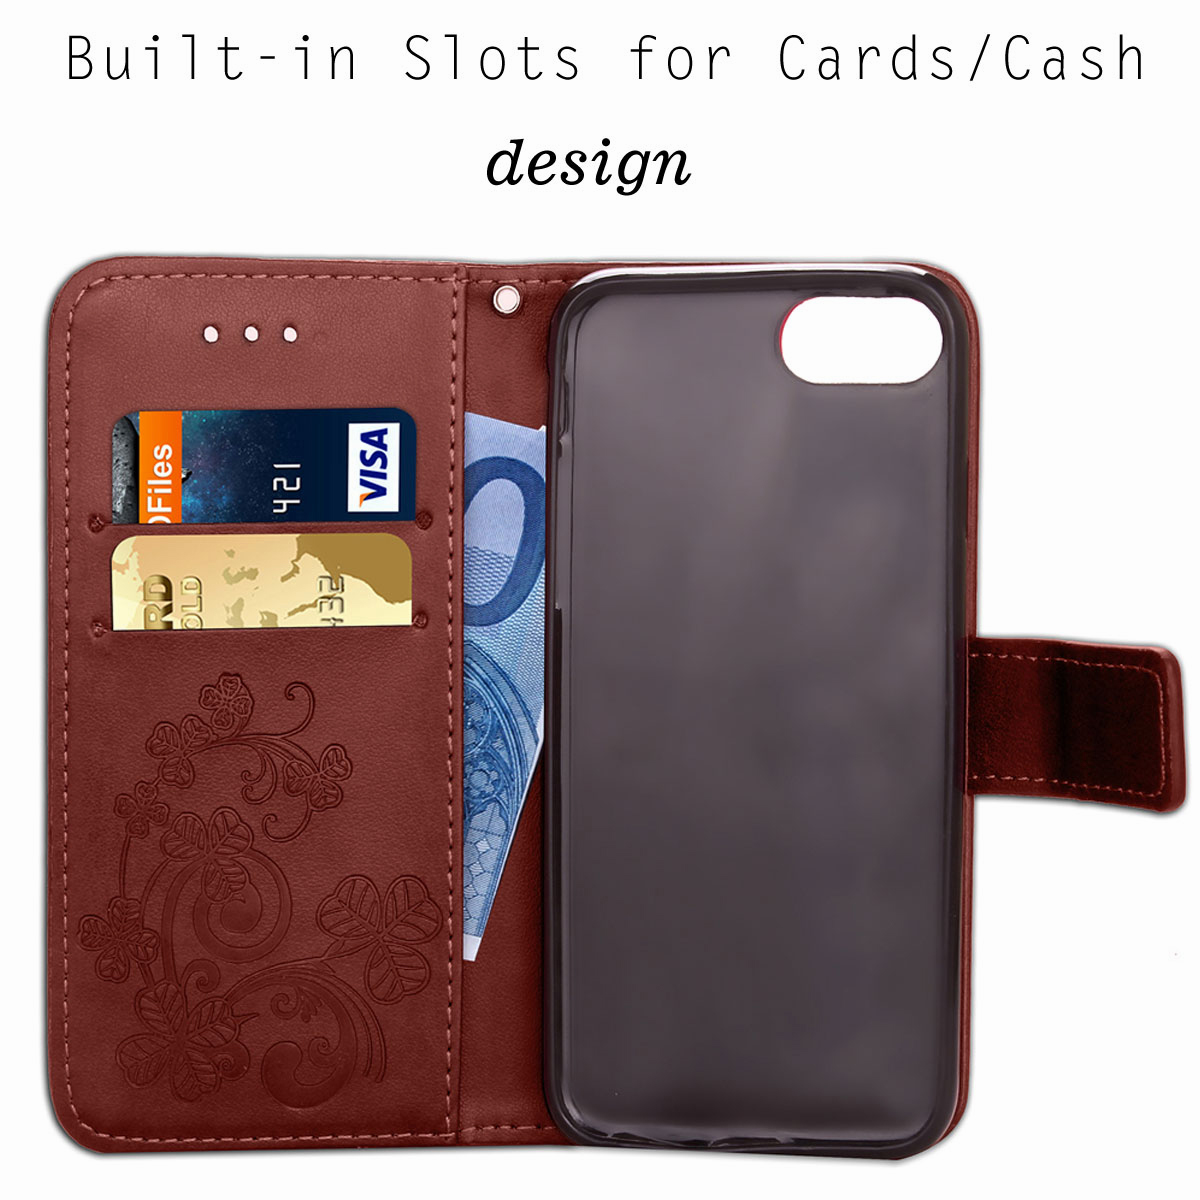 For-Apple-iPhone-Phones-Soft-Leather-Magnetic-Wallet-Card-Holder-Sim-Case-Cover thumbnail 18